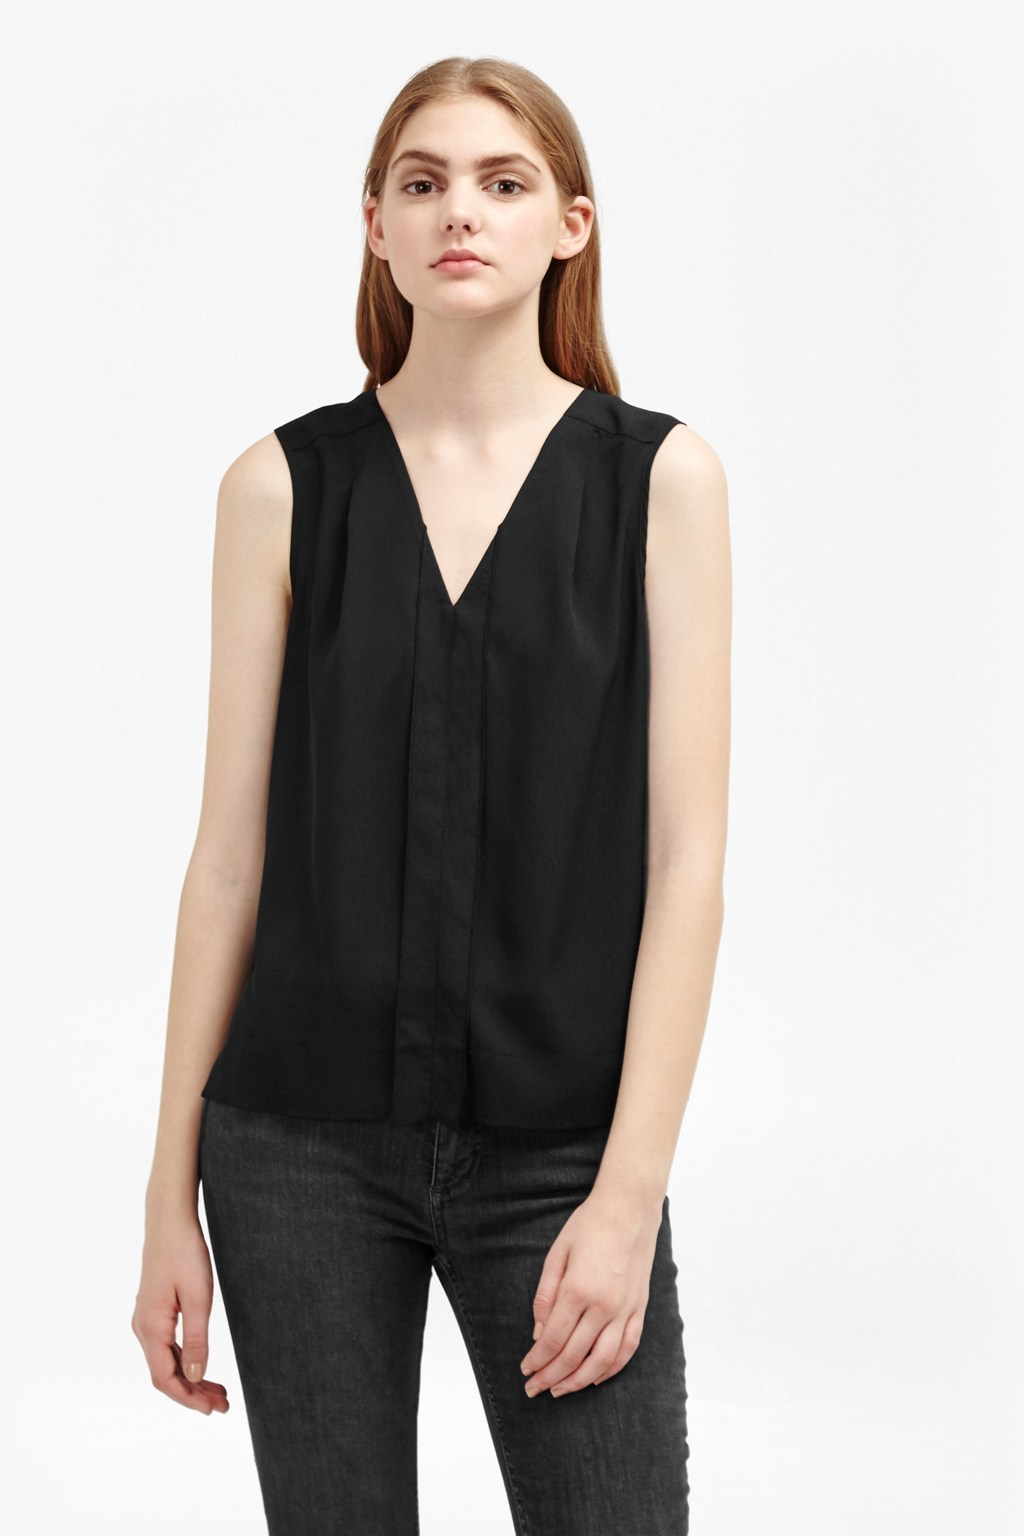 Crepe Light V Neck Top Black - neckline: v-neck; pattern: plain; sleeve style: sleeveless; style: vest top; predominant colour: black; occasions: casual, creative work; length: standard; fibres: polyester/polyamide - 100%; fit: straight cut; sleeve length: sleeveless; texture group: crepes; pattern type: fabric; wardrobe: basic; season: a/w 2016